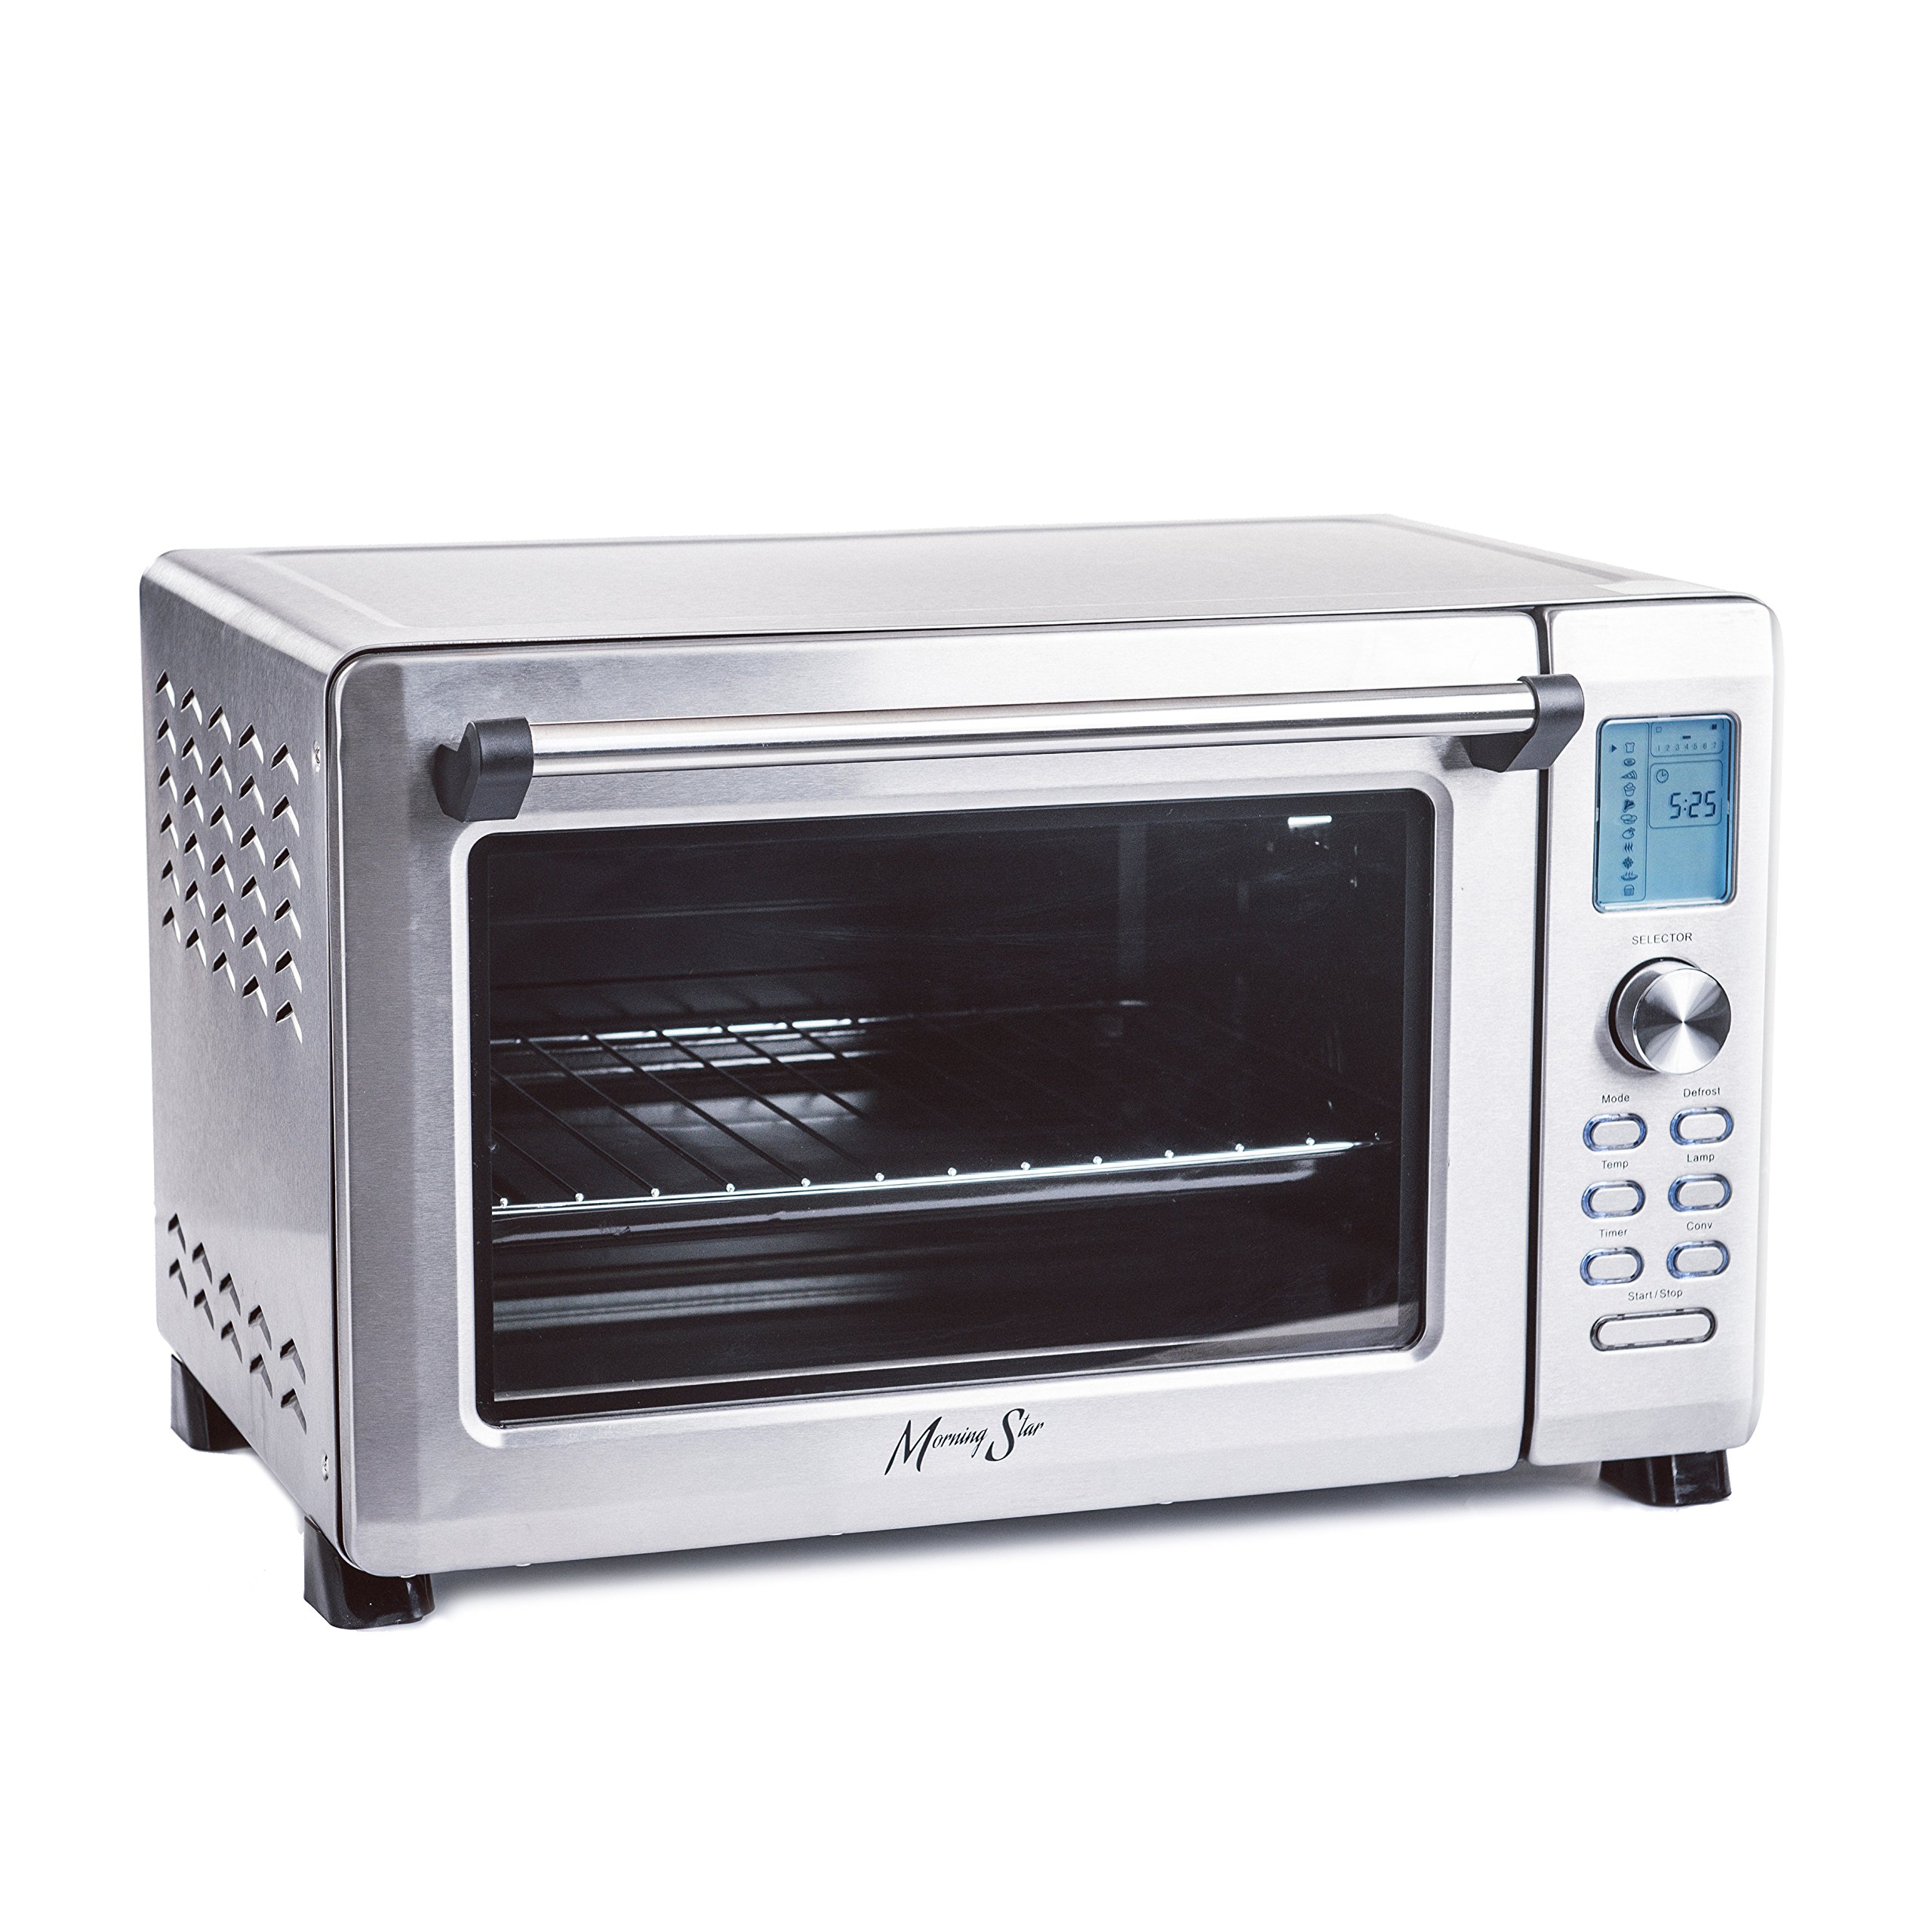 Morning Star - New and Improved - Extra Large -12-Slice Countertop Digital Infrared (No Preheat Needed) Convection Toaster Oven, Stainless Steel 21'' x 13'' x 13.5''